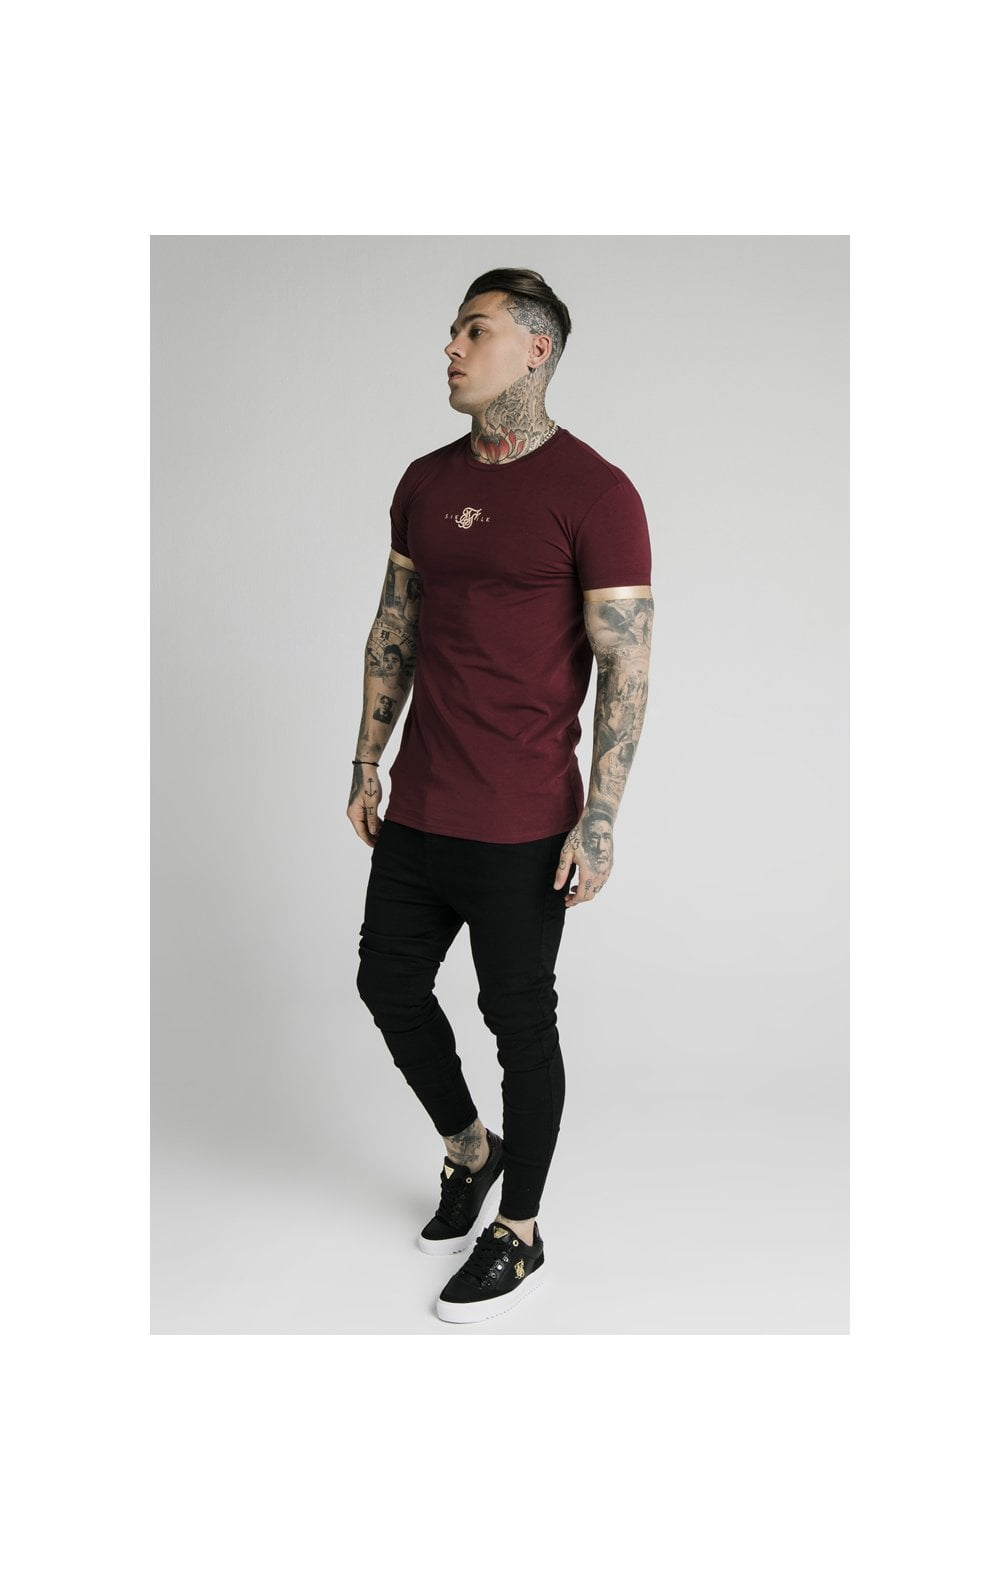 Load image into Gallery viewer, SikSilk S/S Inset Cuff Gym Tee – Burgundy & Gold (3)